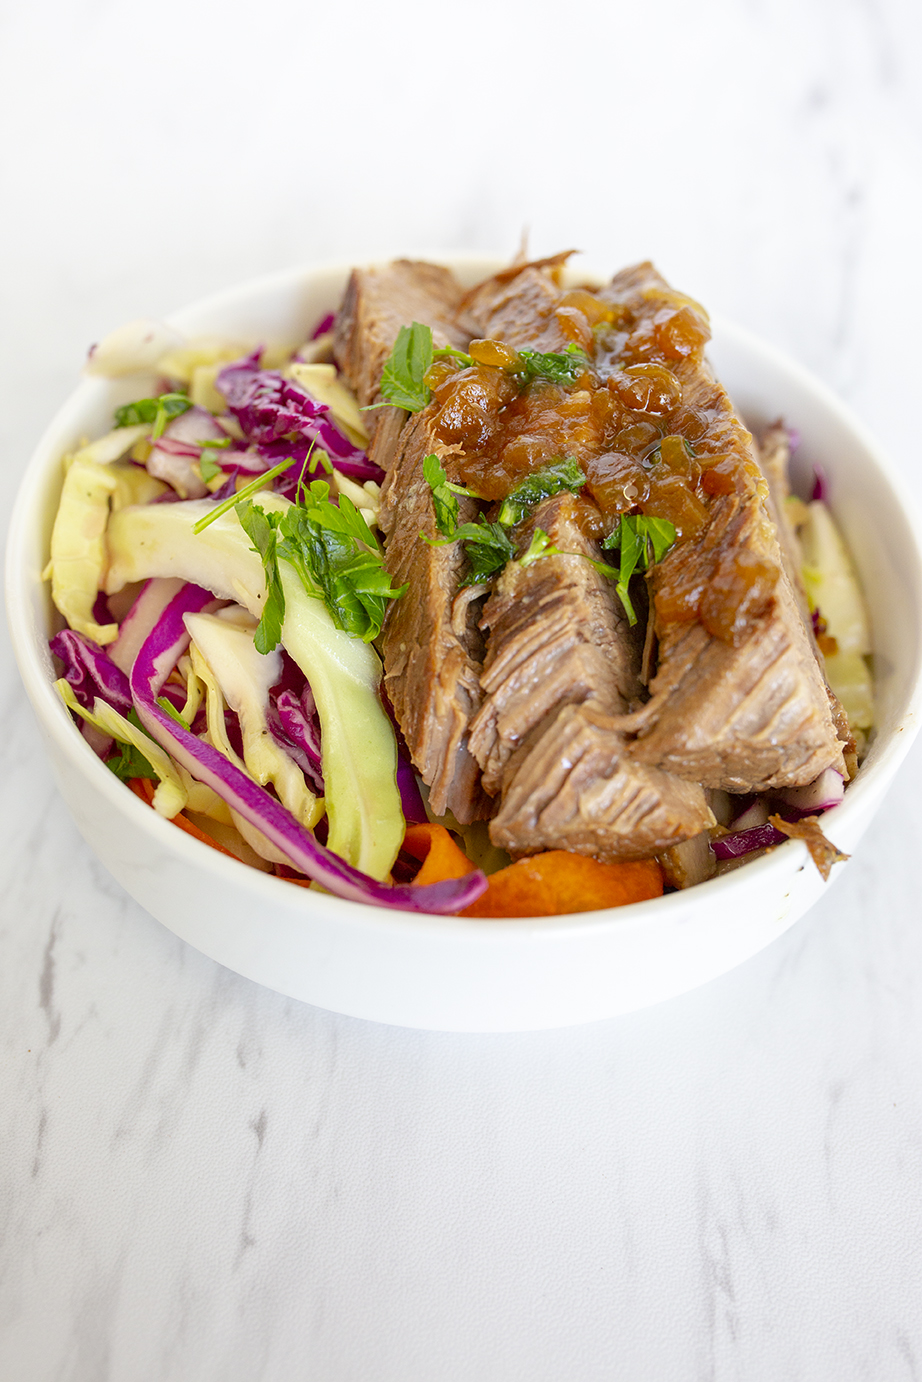 Beef brisket served with apple vinegar slaw on a white bowl